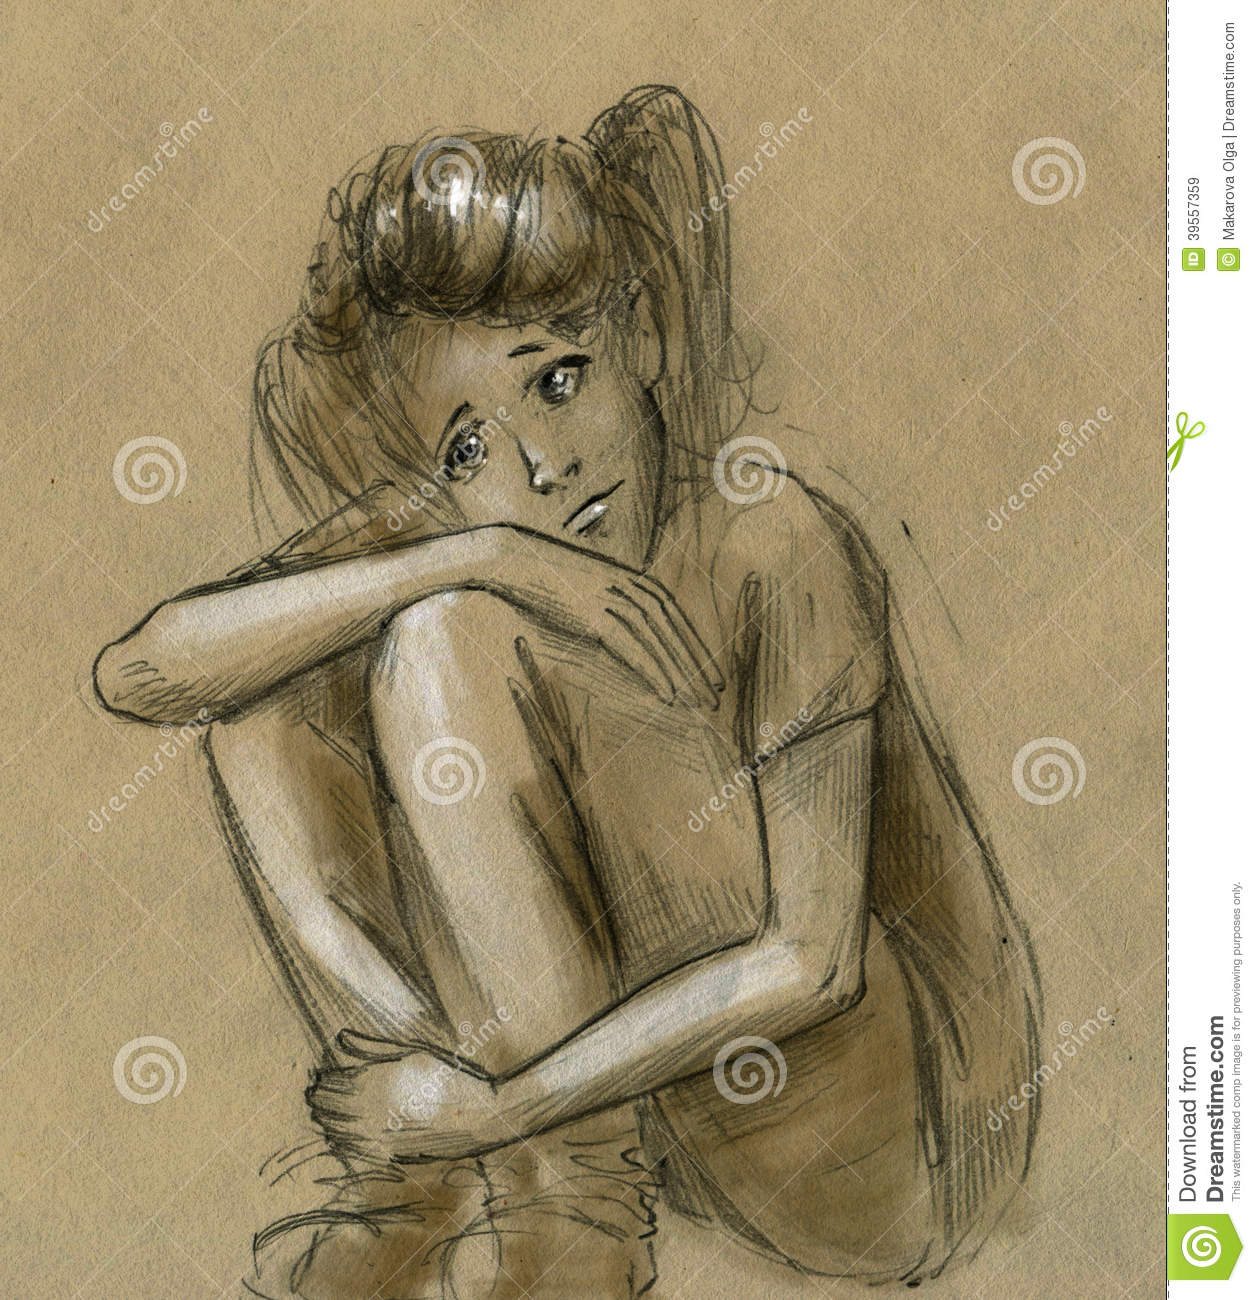 Sad teen girl thinking of something alone hand drawn rough pencil sketch